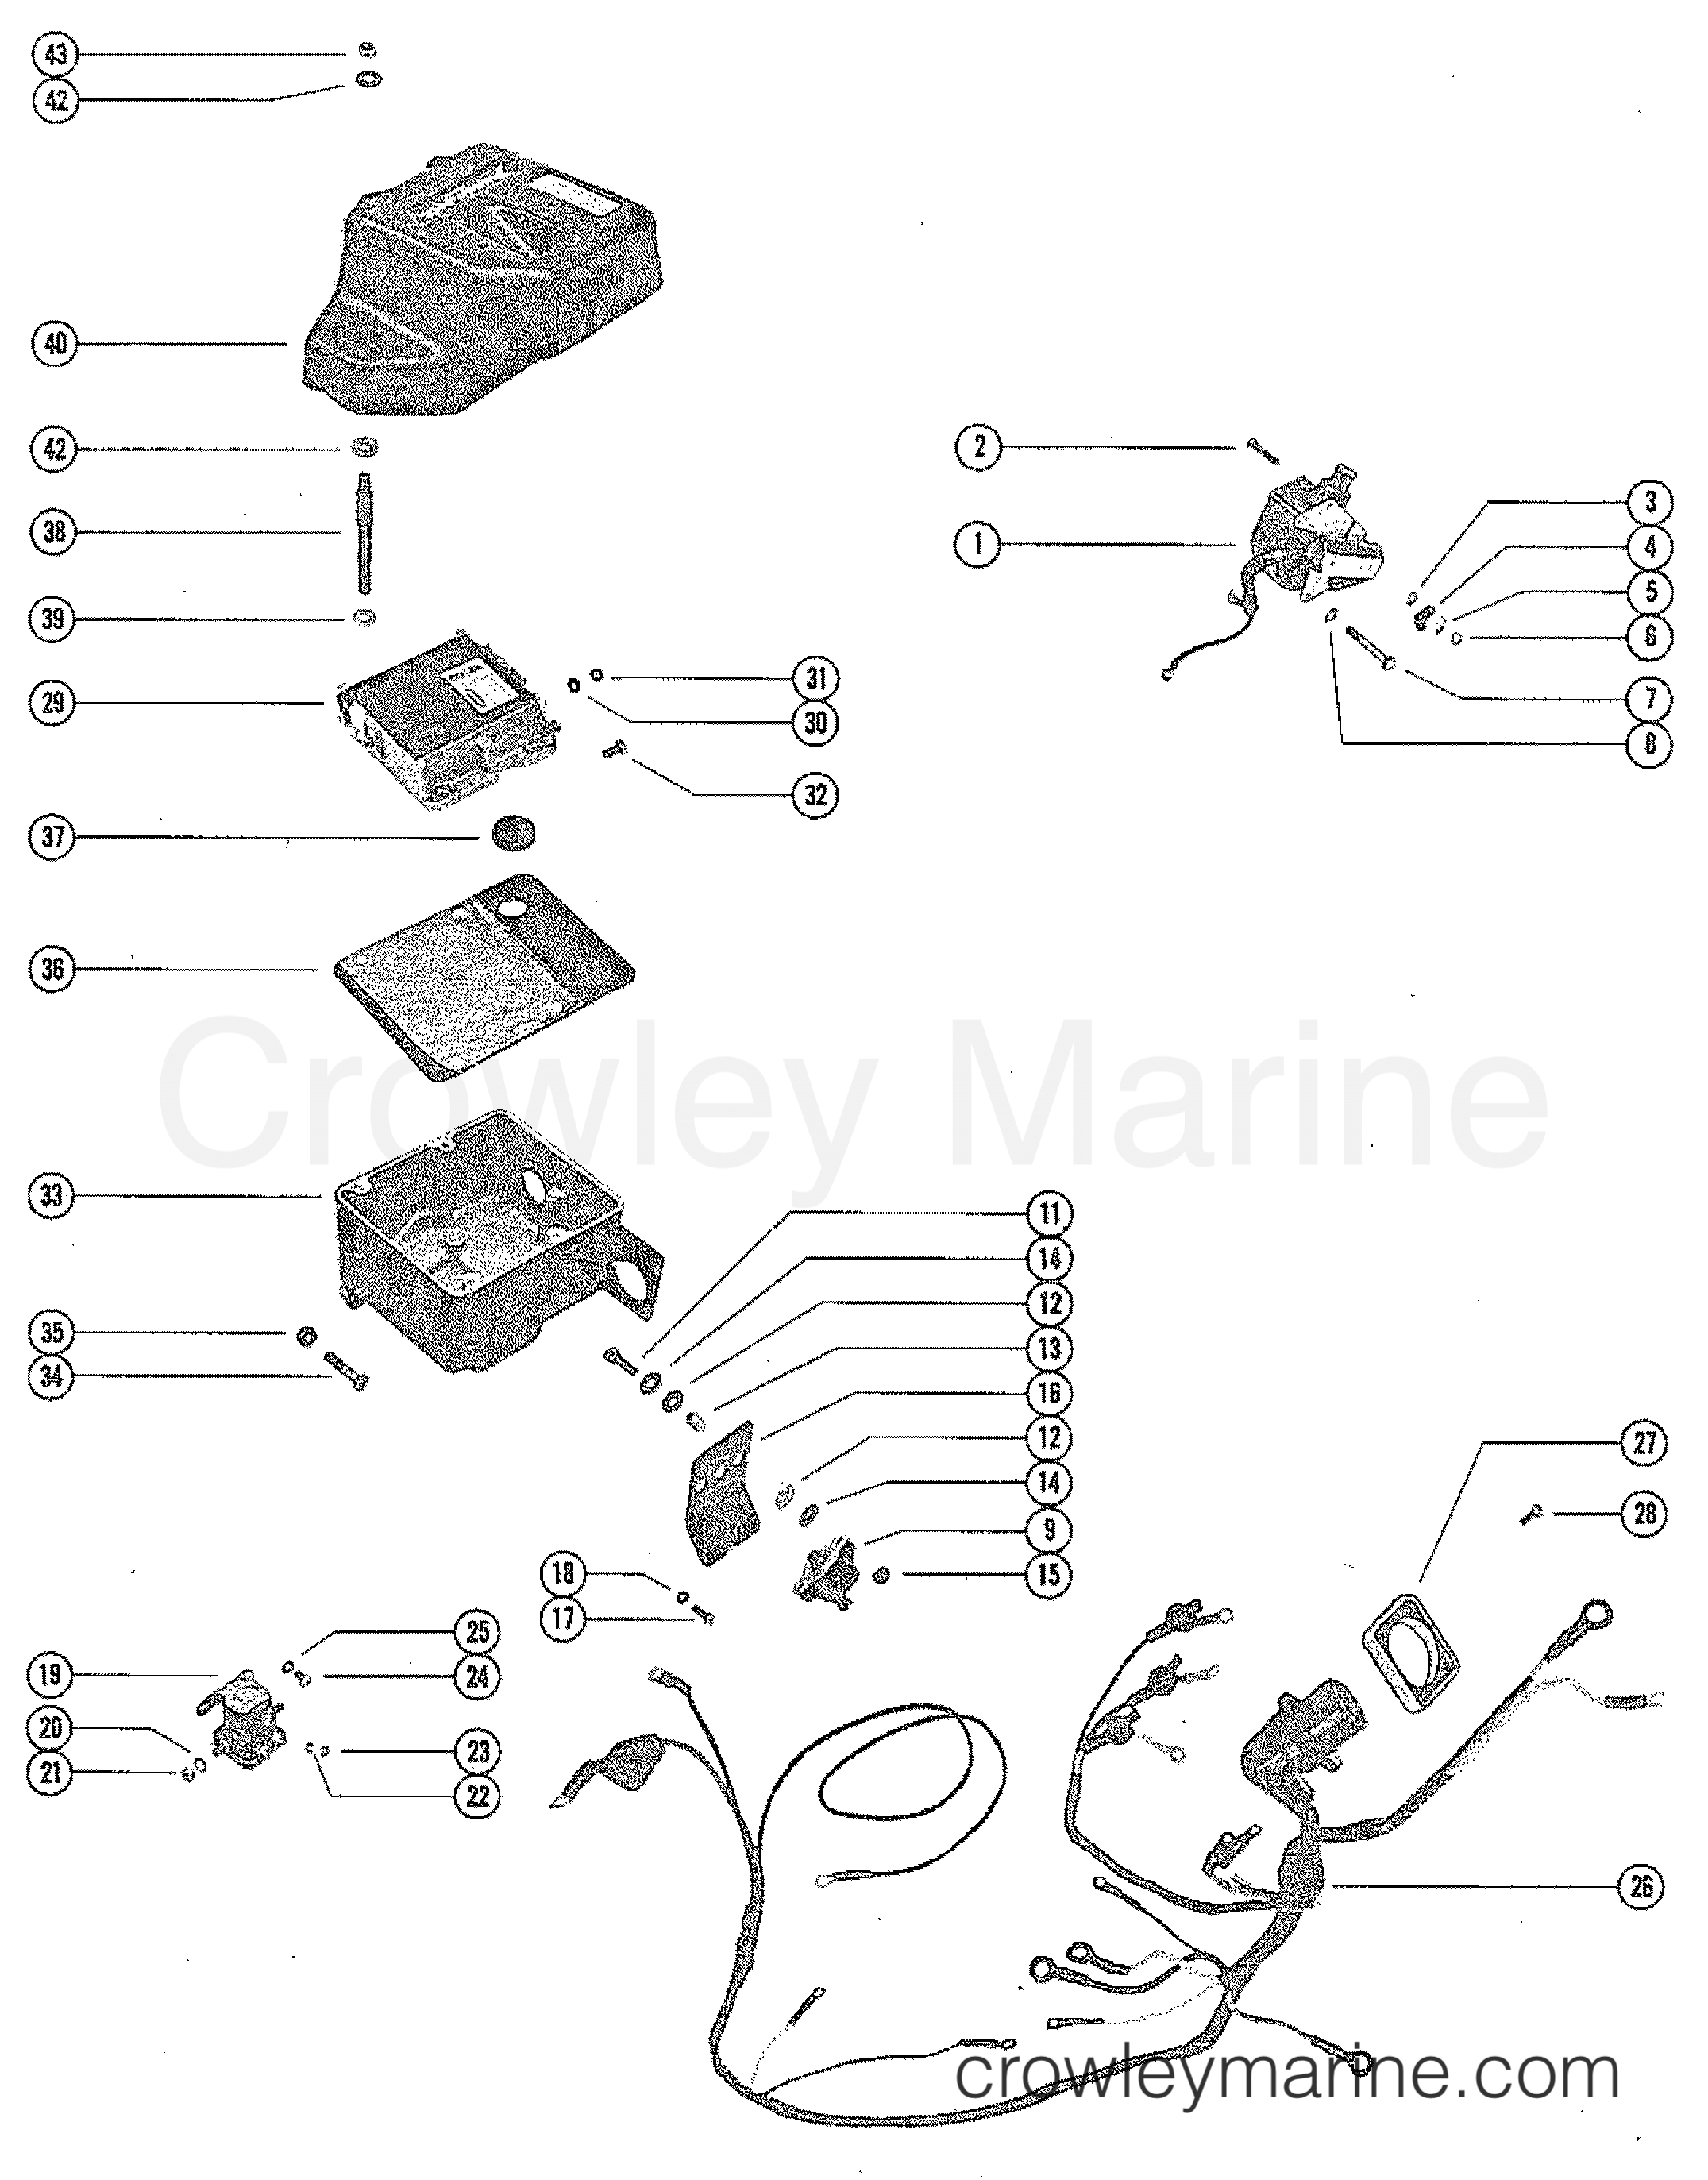 Wiring Harness Switch Box And Ignition Coil